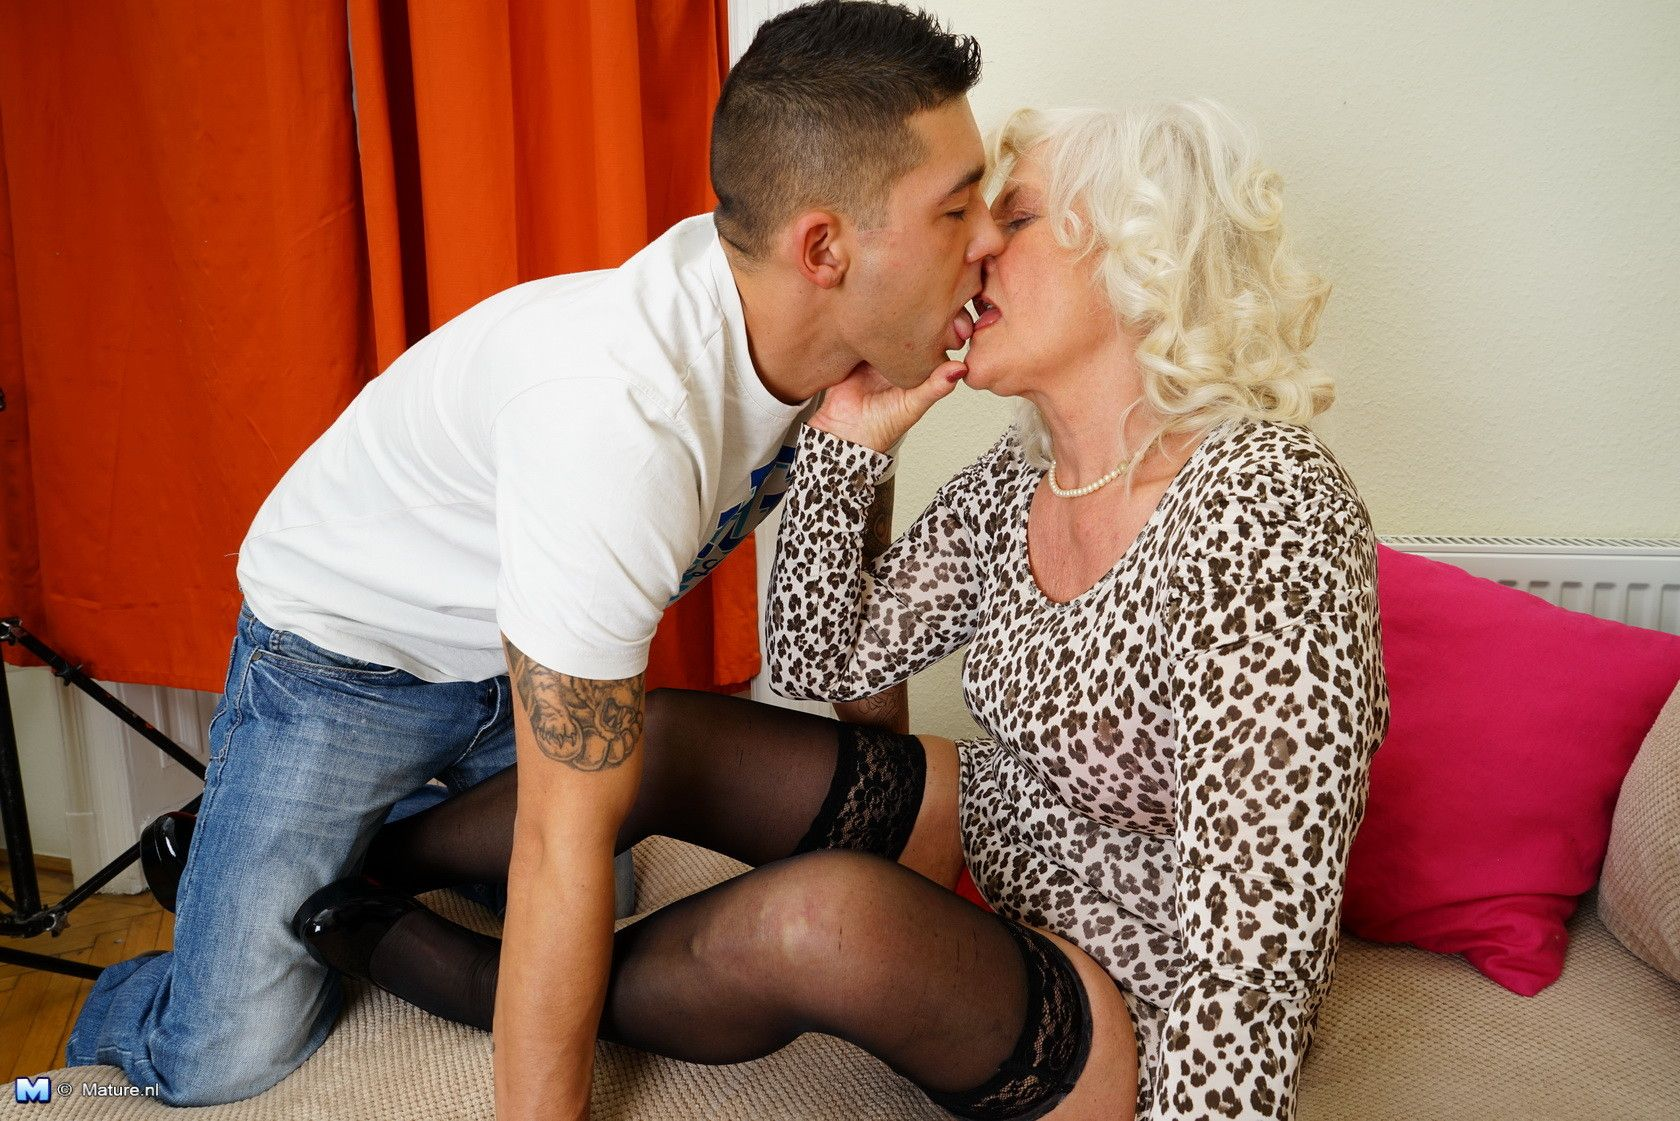 Agedlove nice blonde granny is fucked by horny man 3